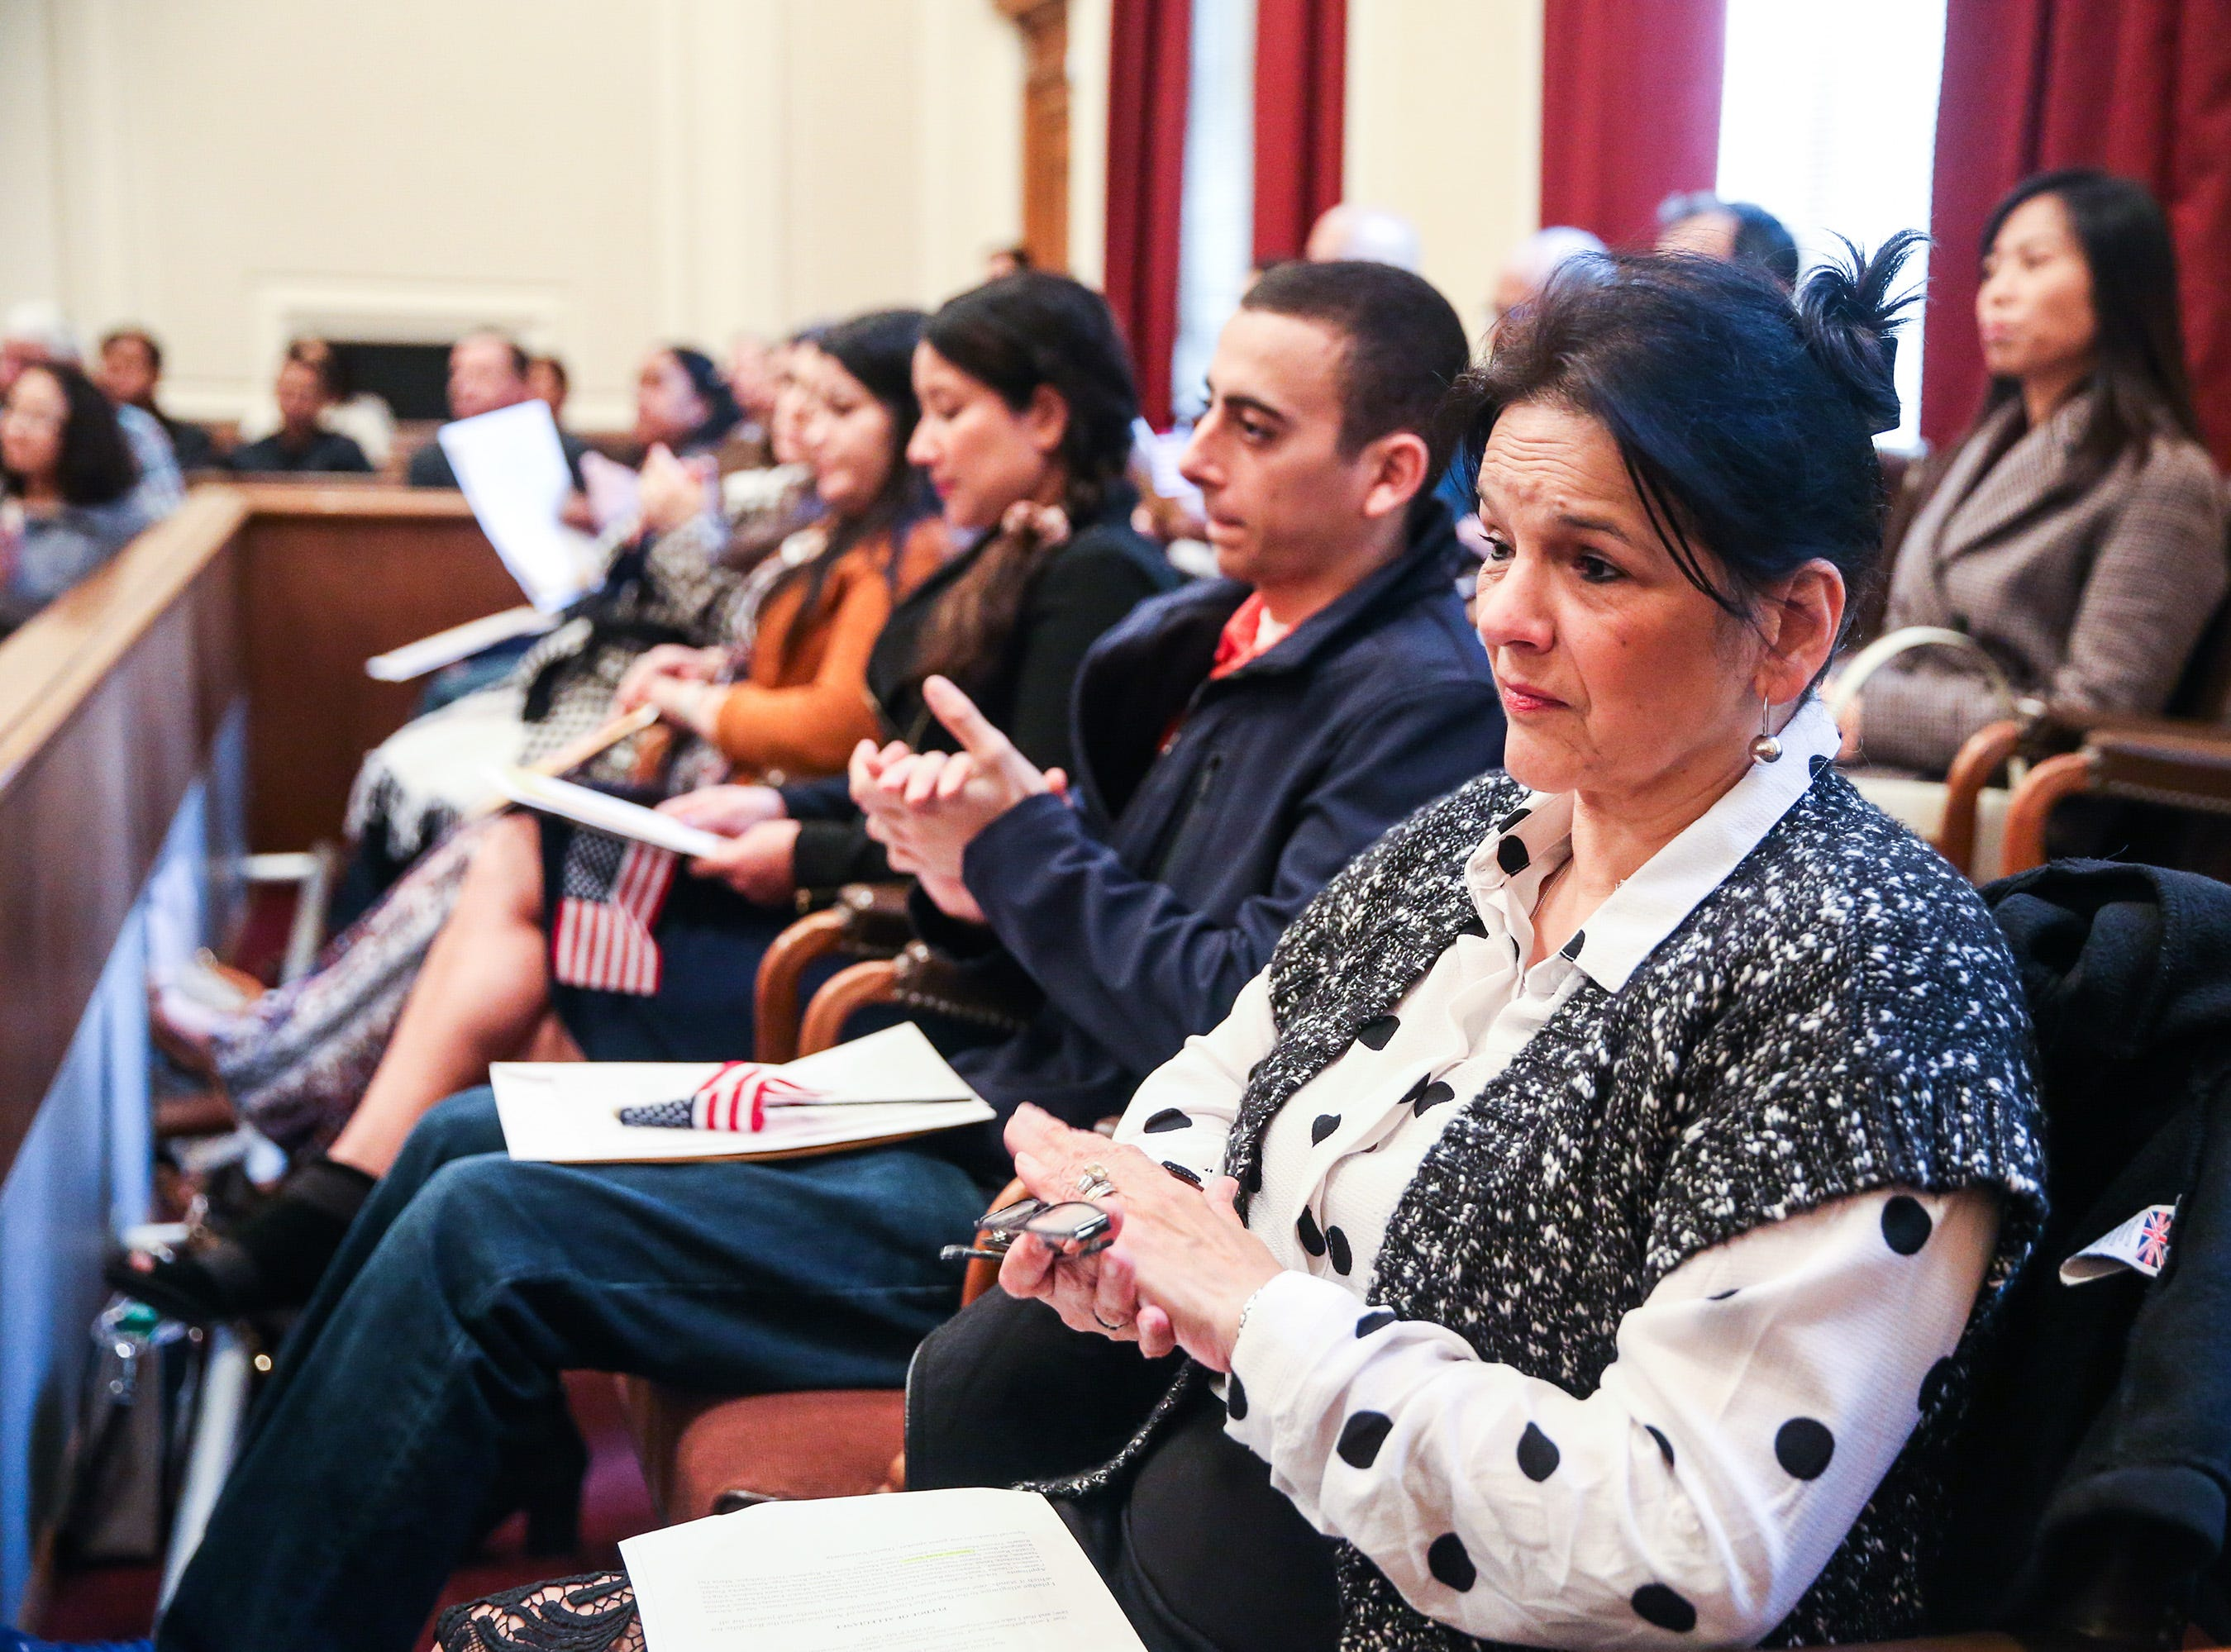 Applicants listen to a speaker during the naturalization ceremony Wednesday, Jan. 8, 2019, at the O.C. Fisher Federal Building.